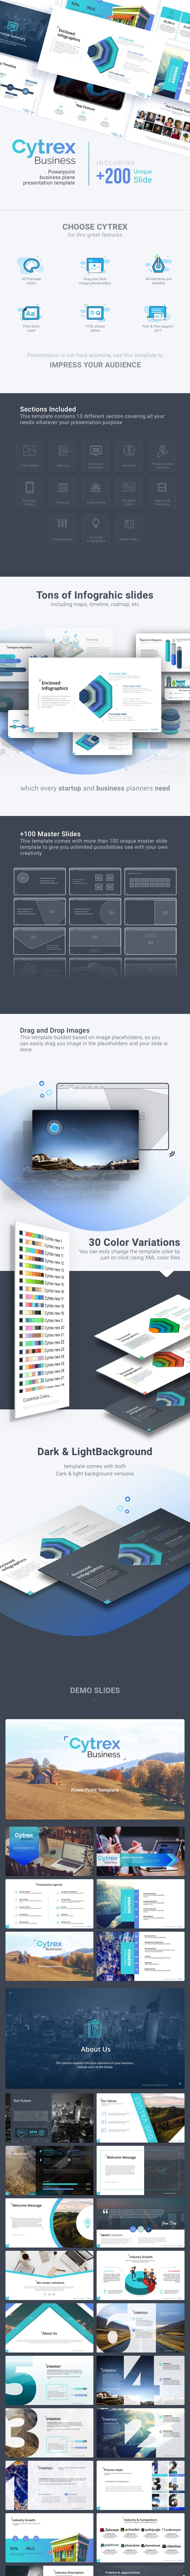 Cytrex - Business Plan PowerPoint Template - Business PowerPoint Templates